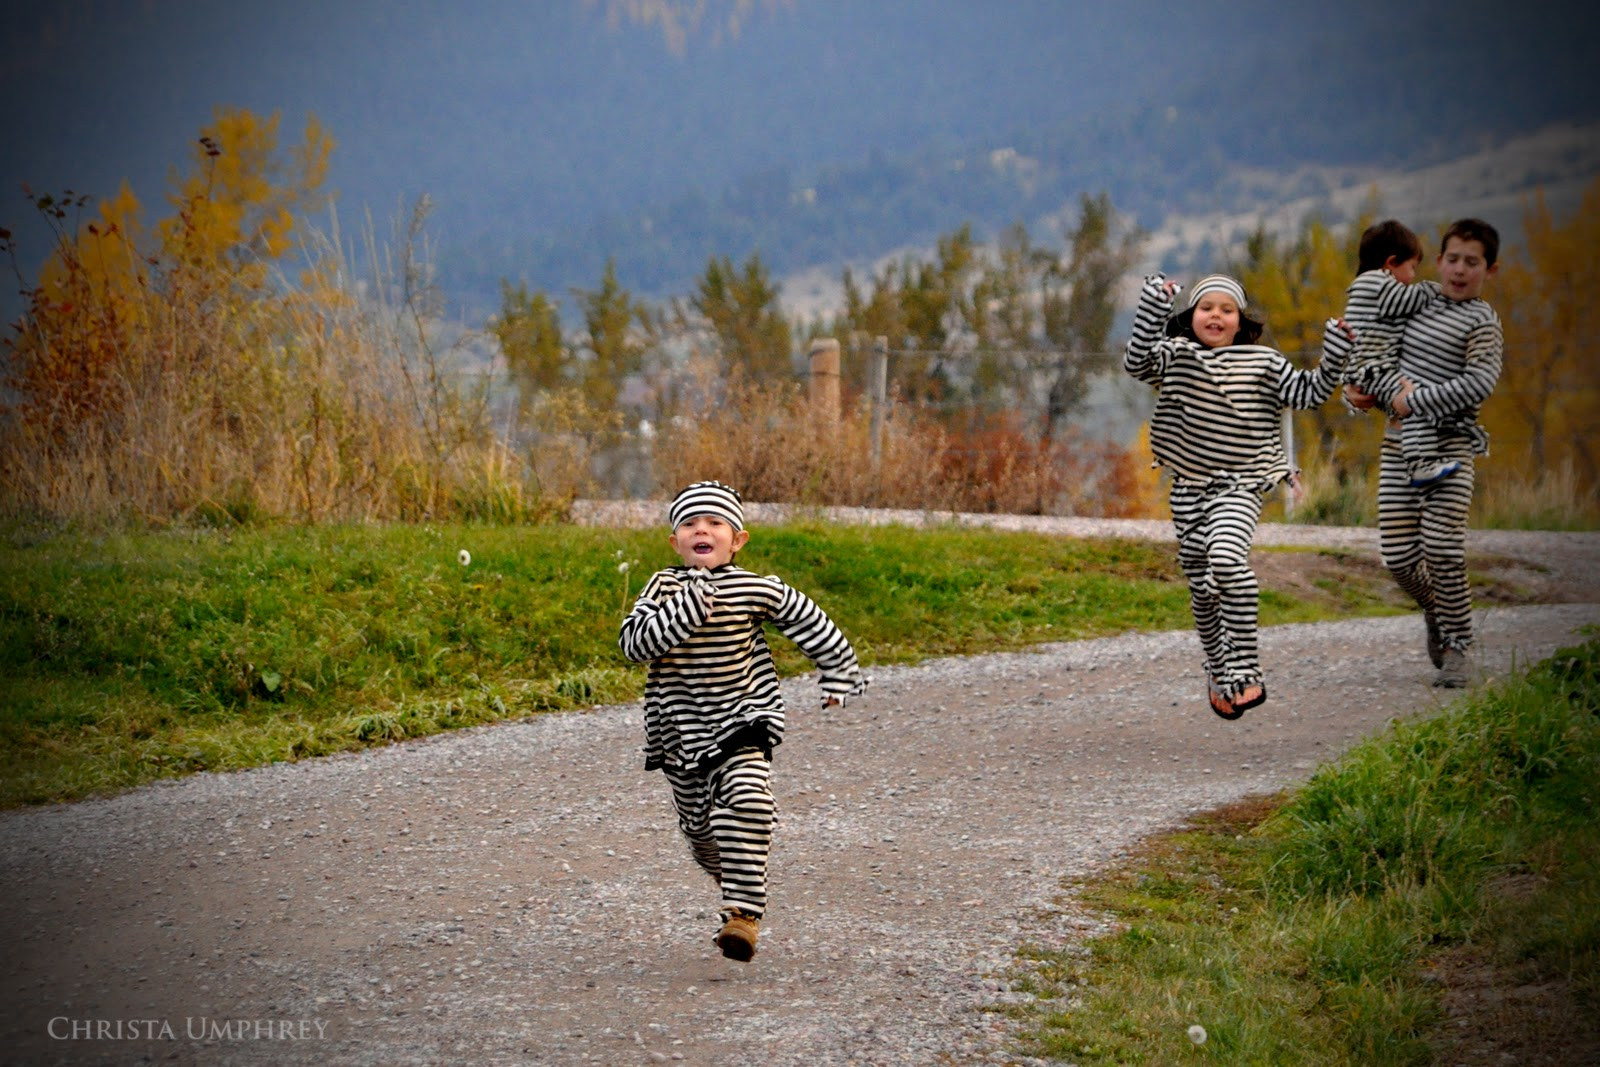 Child running away from home - Day 21 Halloween Runaways